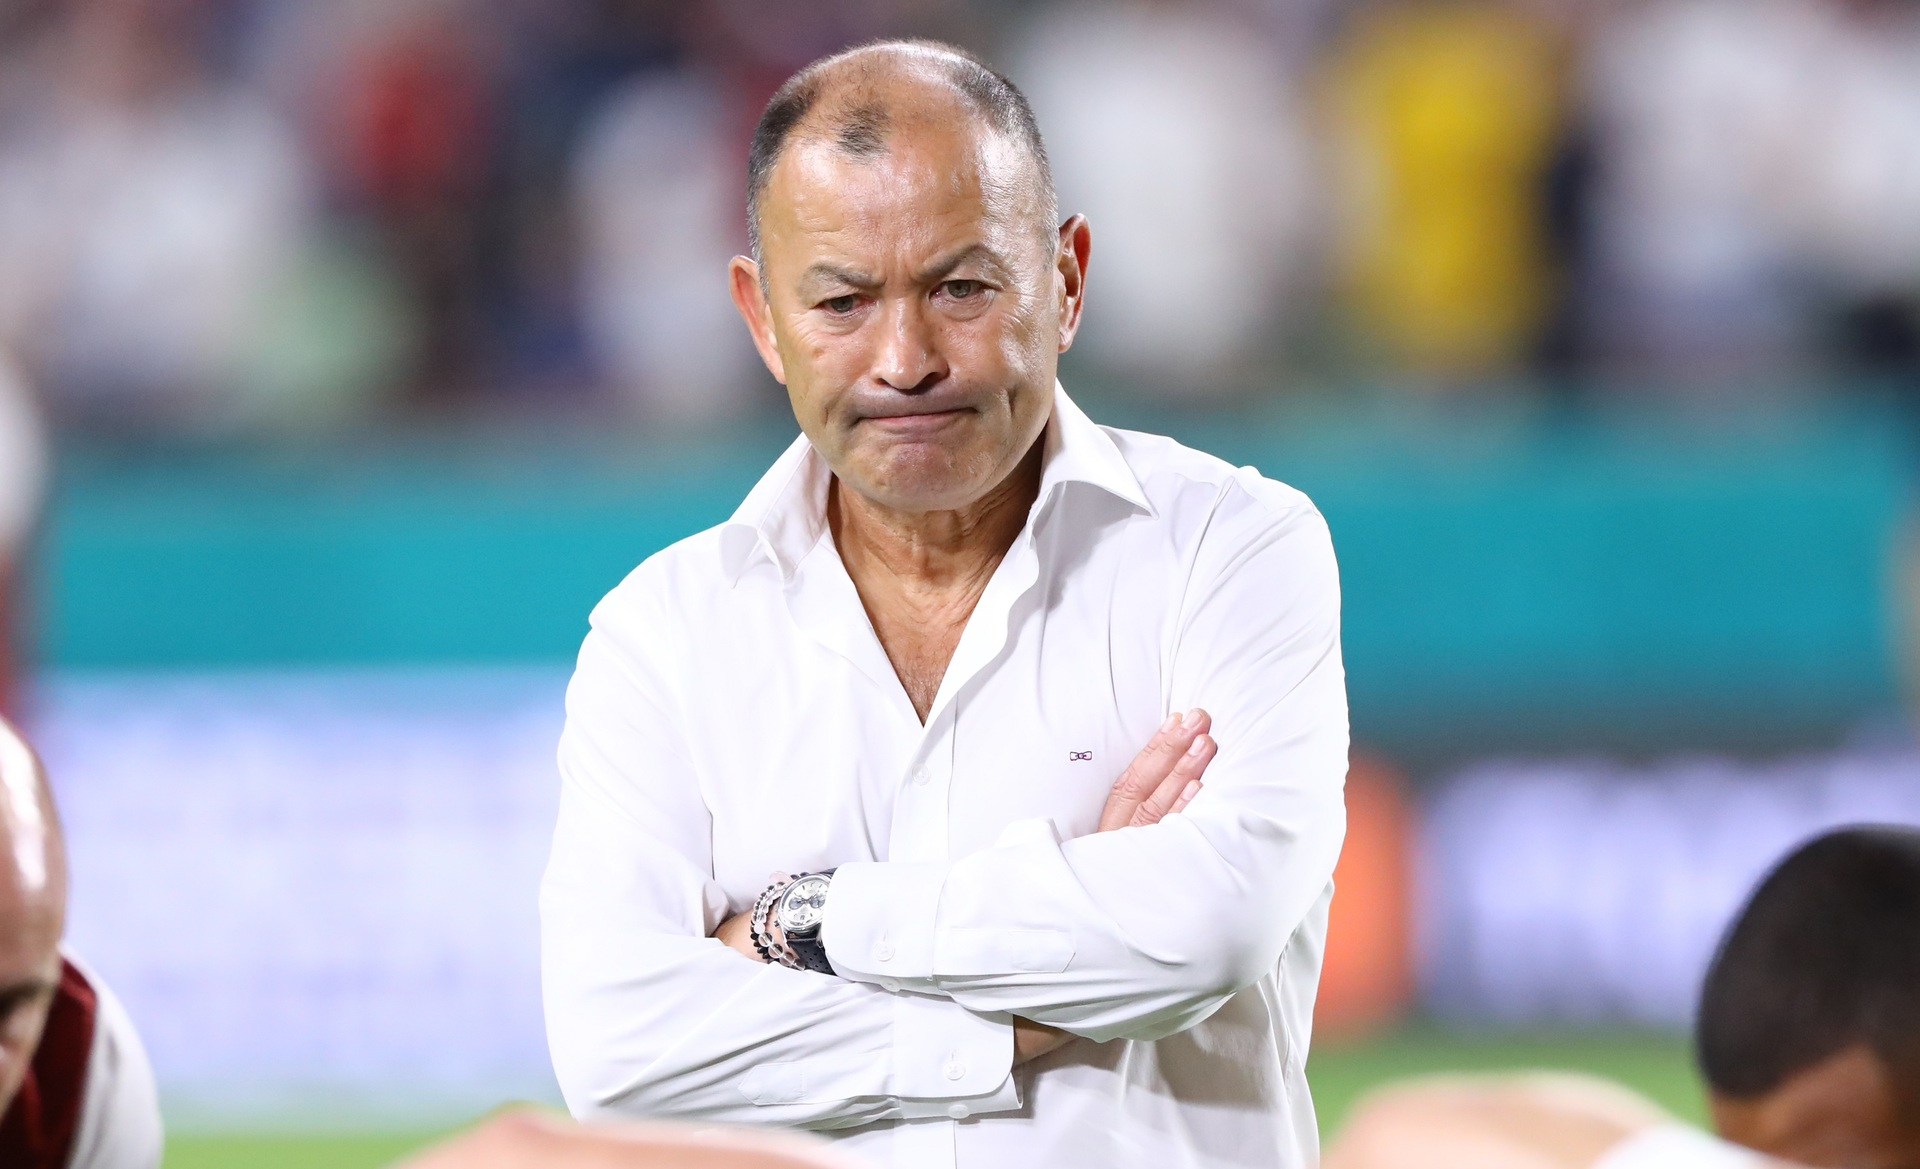 Eddie Jones on ABs: How to beat 'greatest team ever in sport'